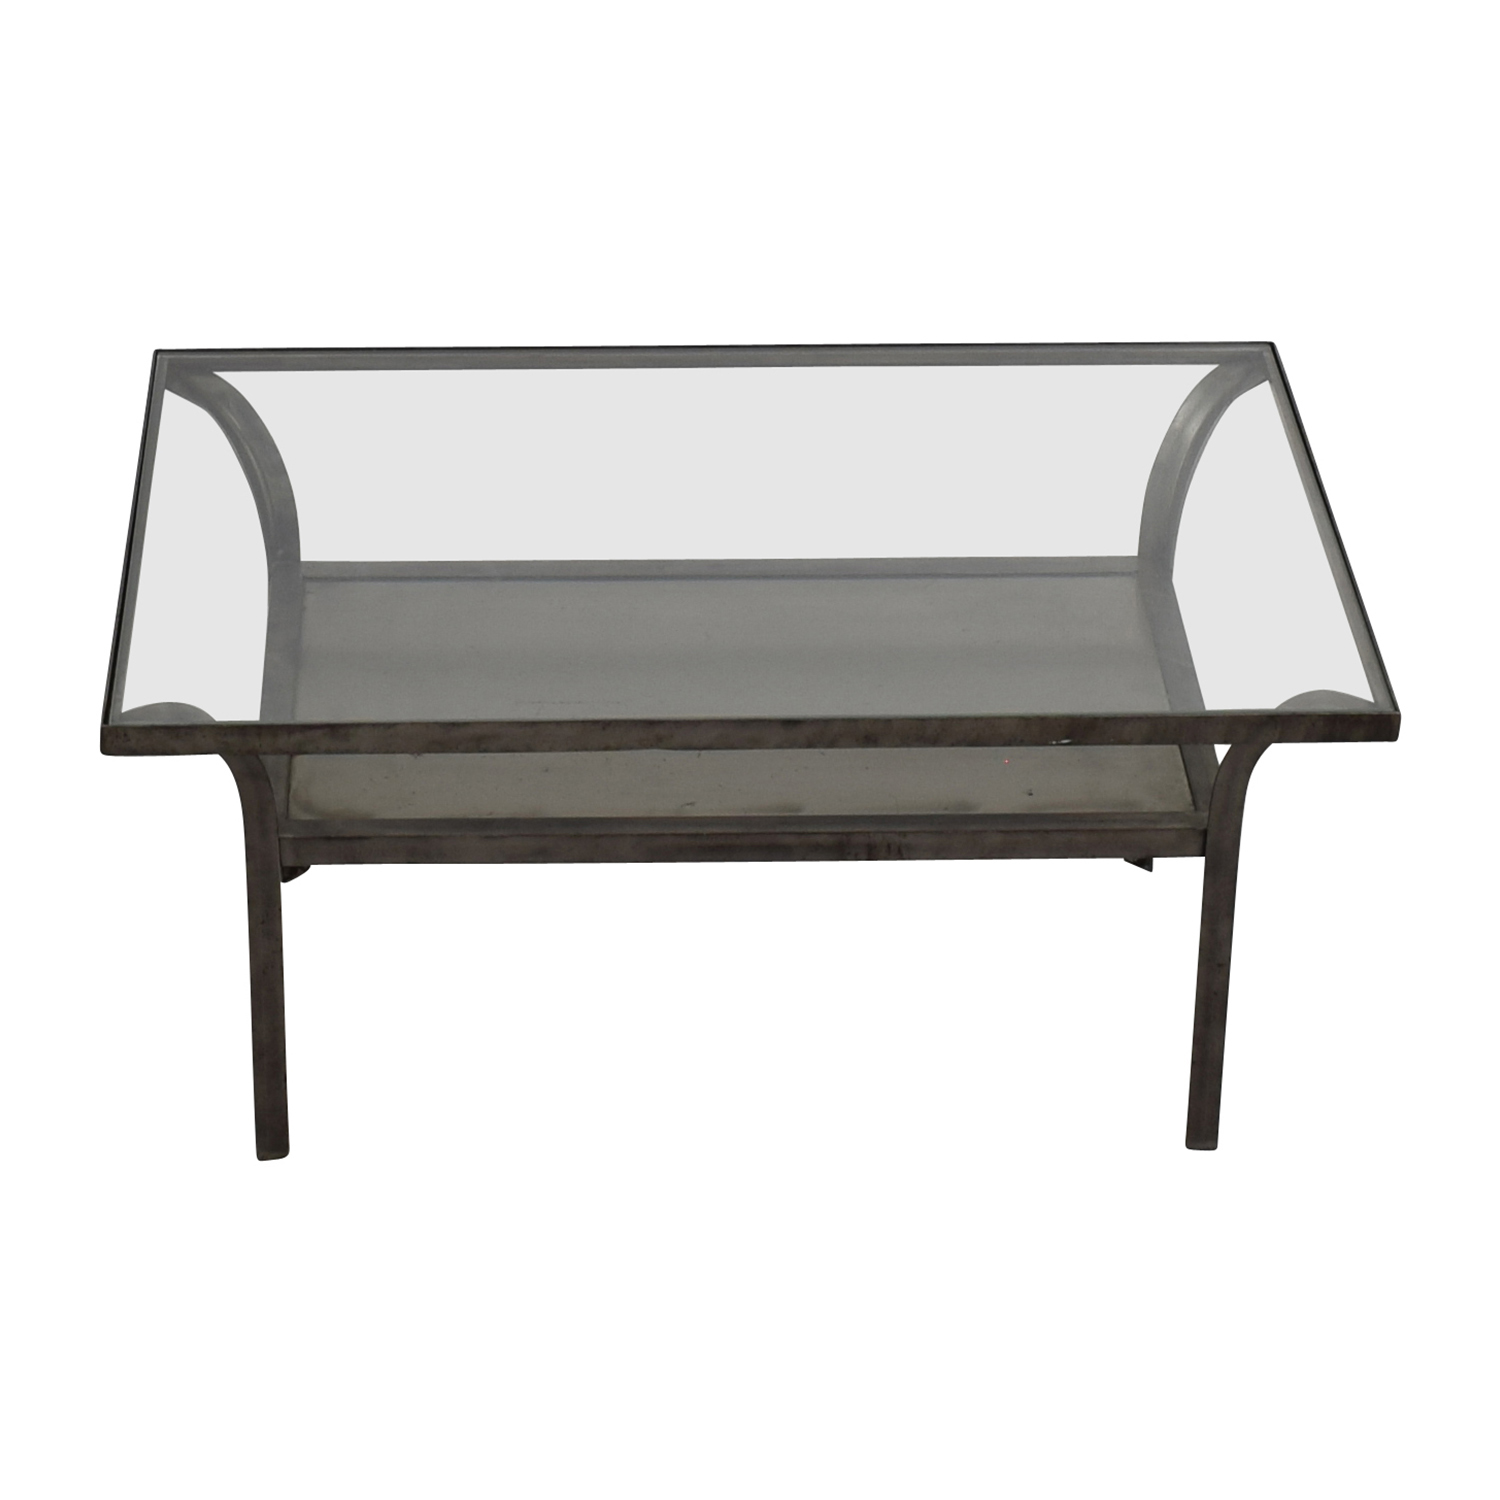 Crate and Barrel Crate and Barrel Metal and Glass Coffee Table price